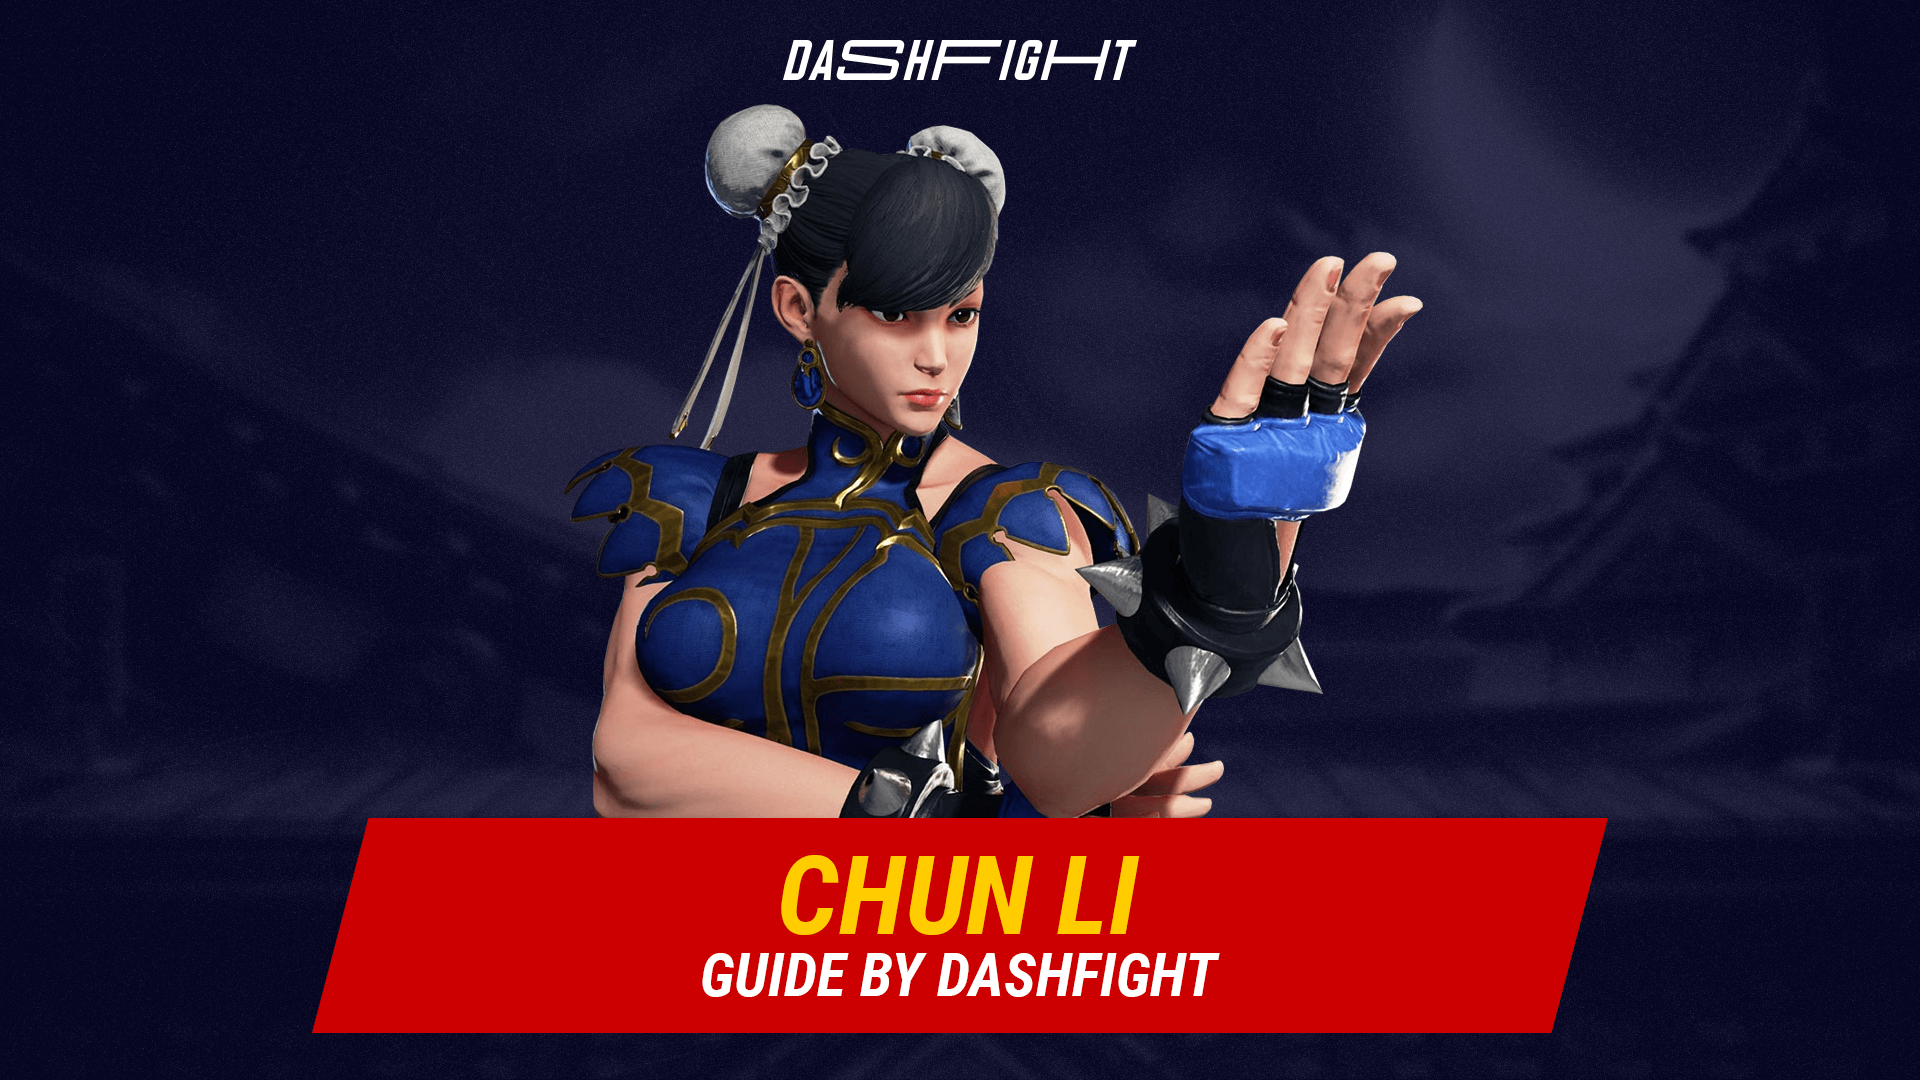 Street Fighter 5: Chun Li Guide - Combos and Move List